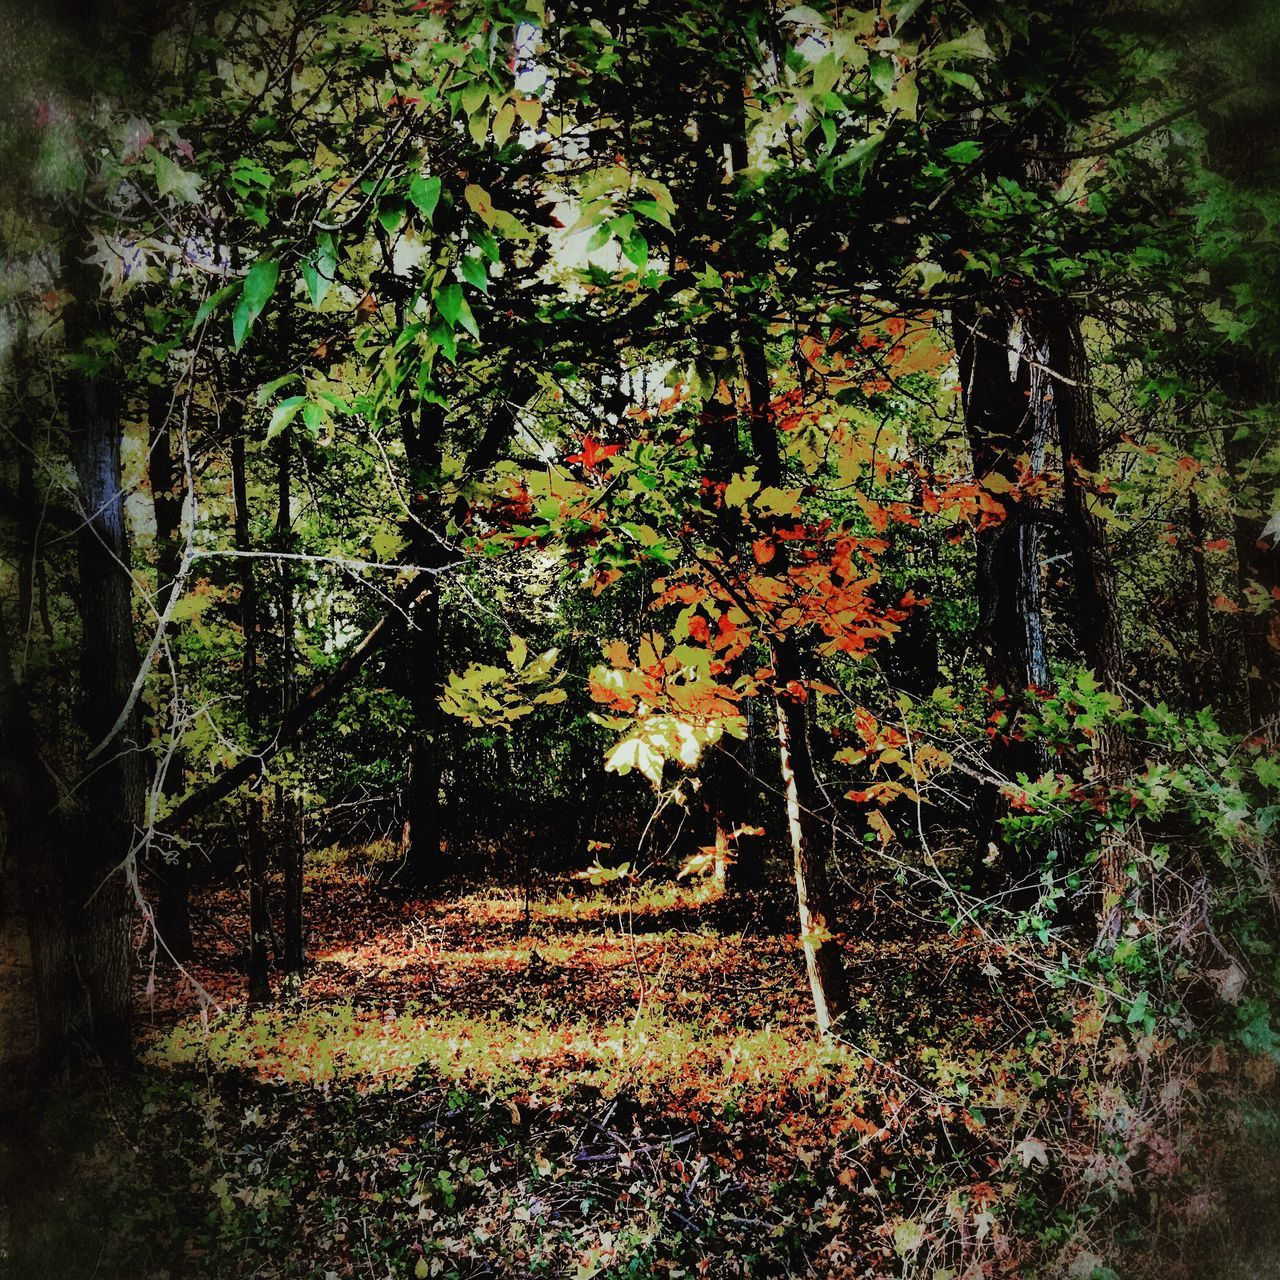 Another wooded view Growth Nature Tree Outdoors No People Beauty In Nature Day Tranquil Scene Iphonephotography Fallfoliage Fall Beauty Colorphotography Camerafilters Multi Colored Taking Pictures Tranquility Sun